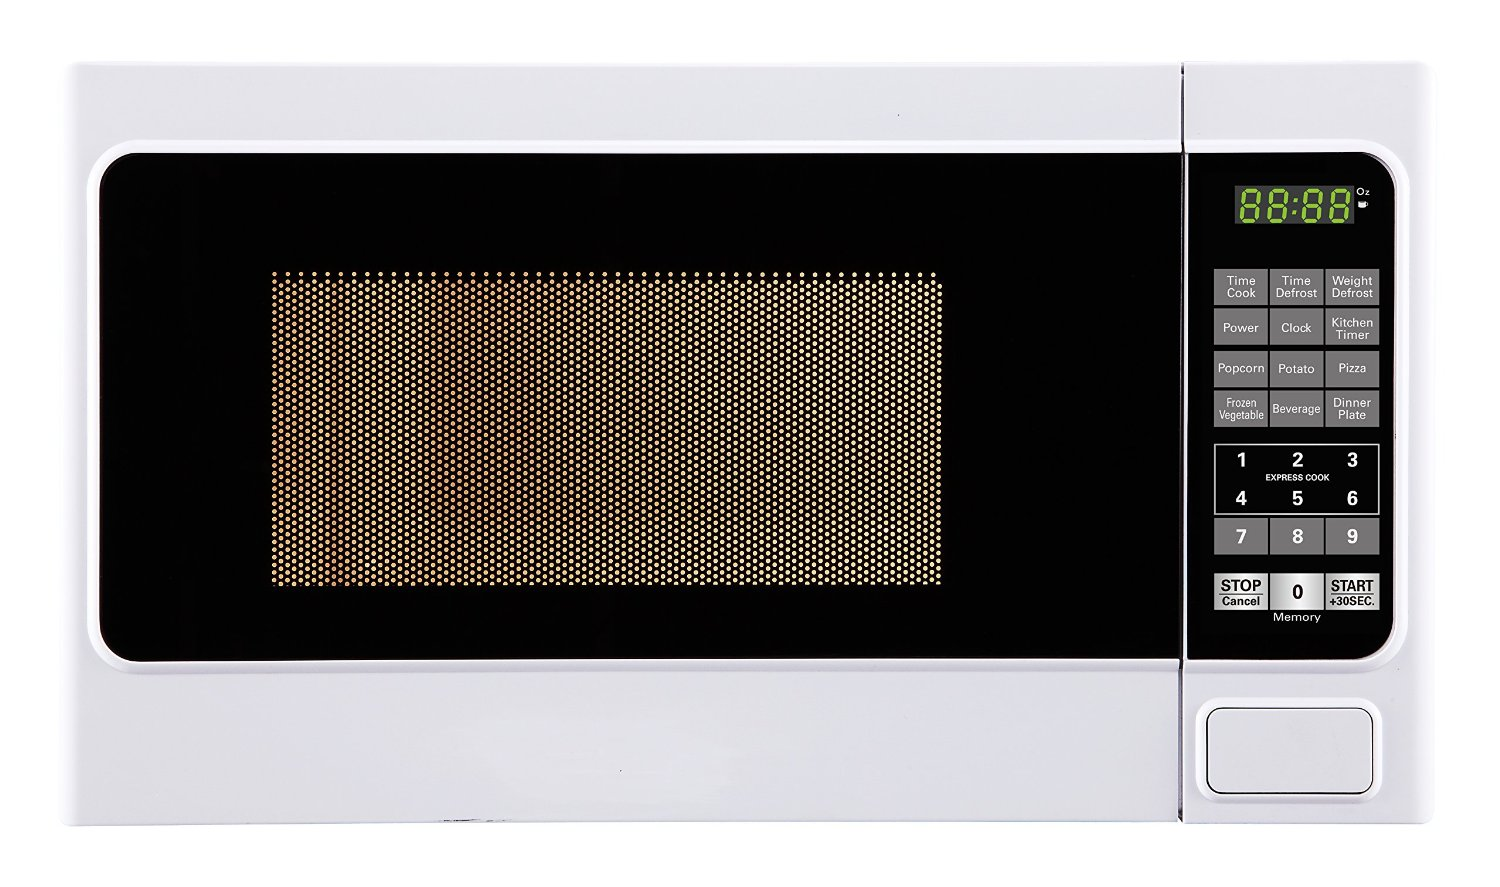 Oster 0.7 Cu Ft Countertop Microwave Impecca Cm07n2w 700w Power Countertop Microwave Oven